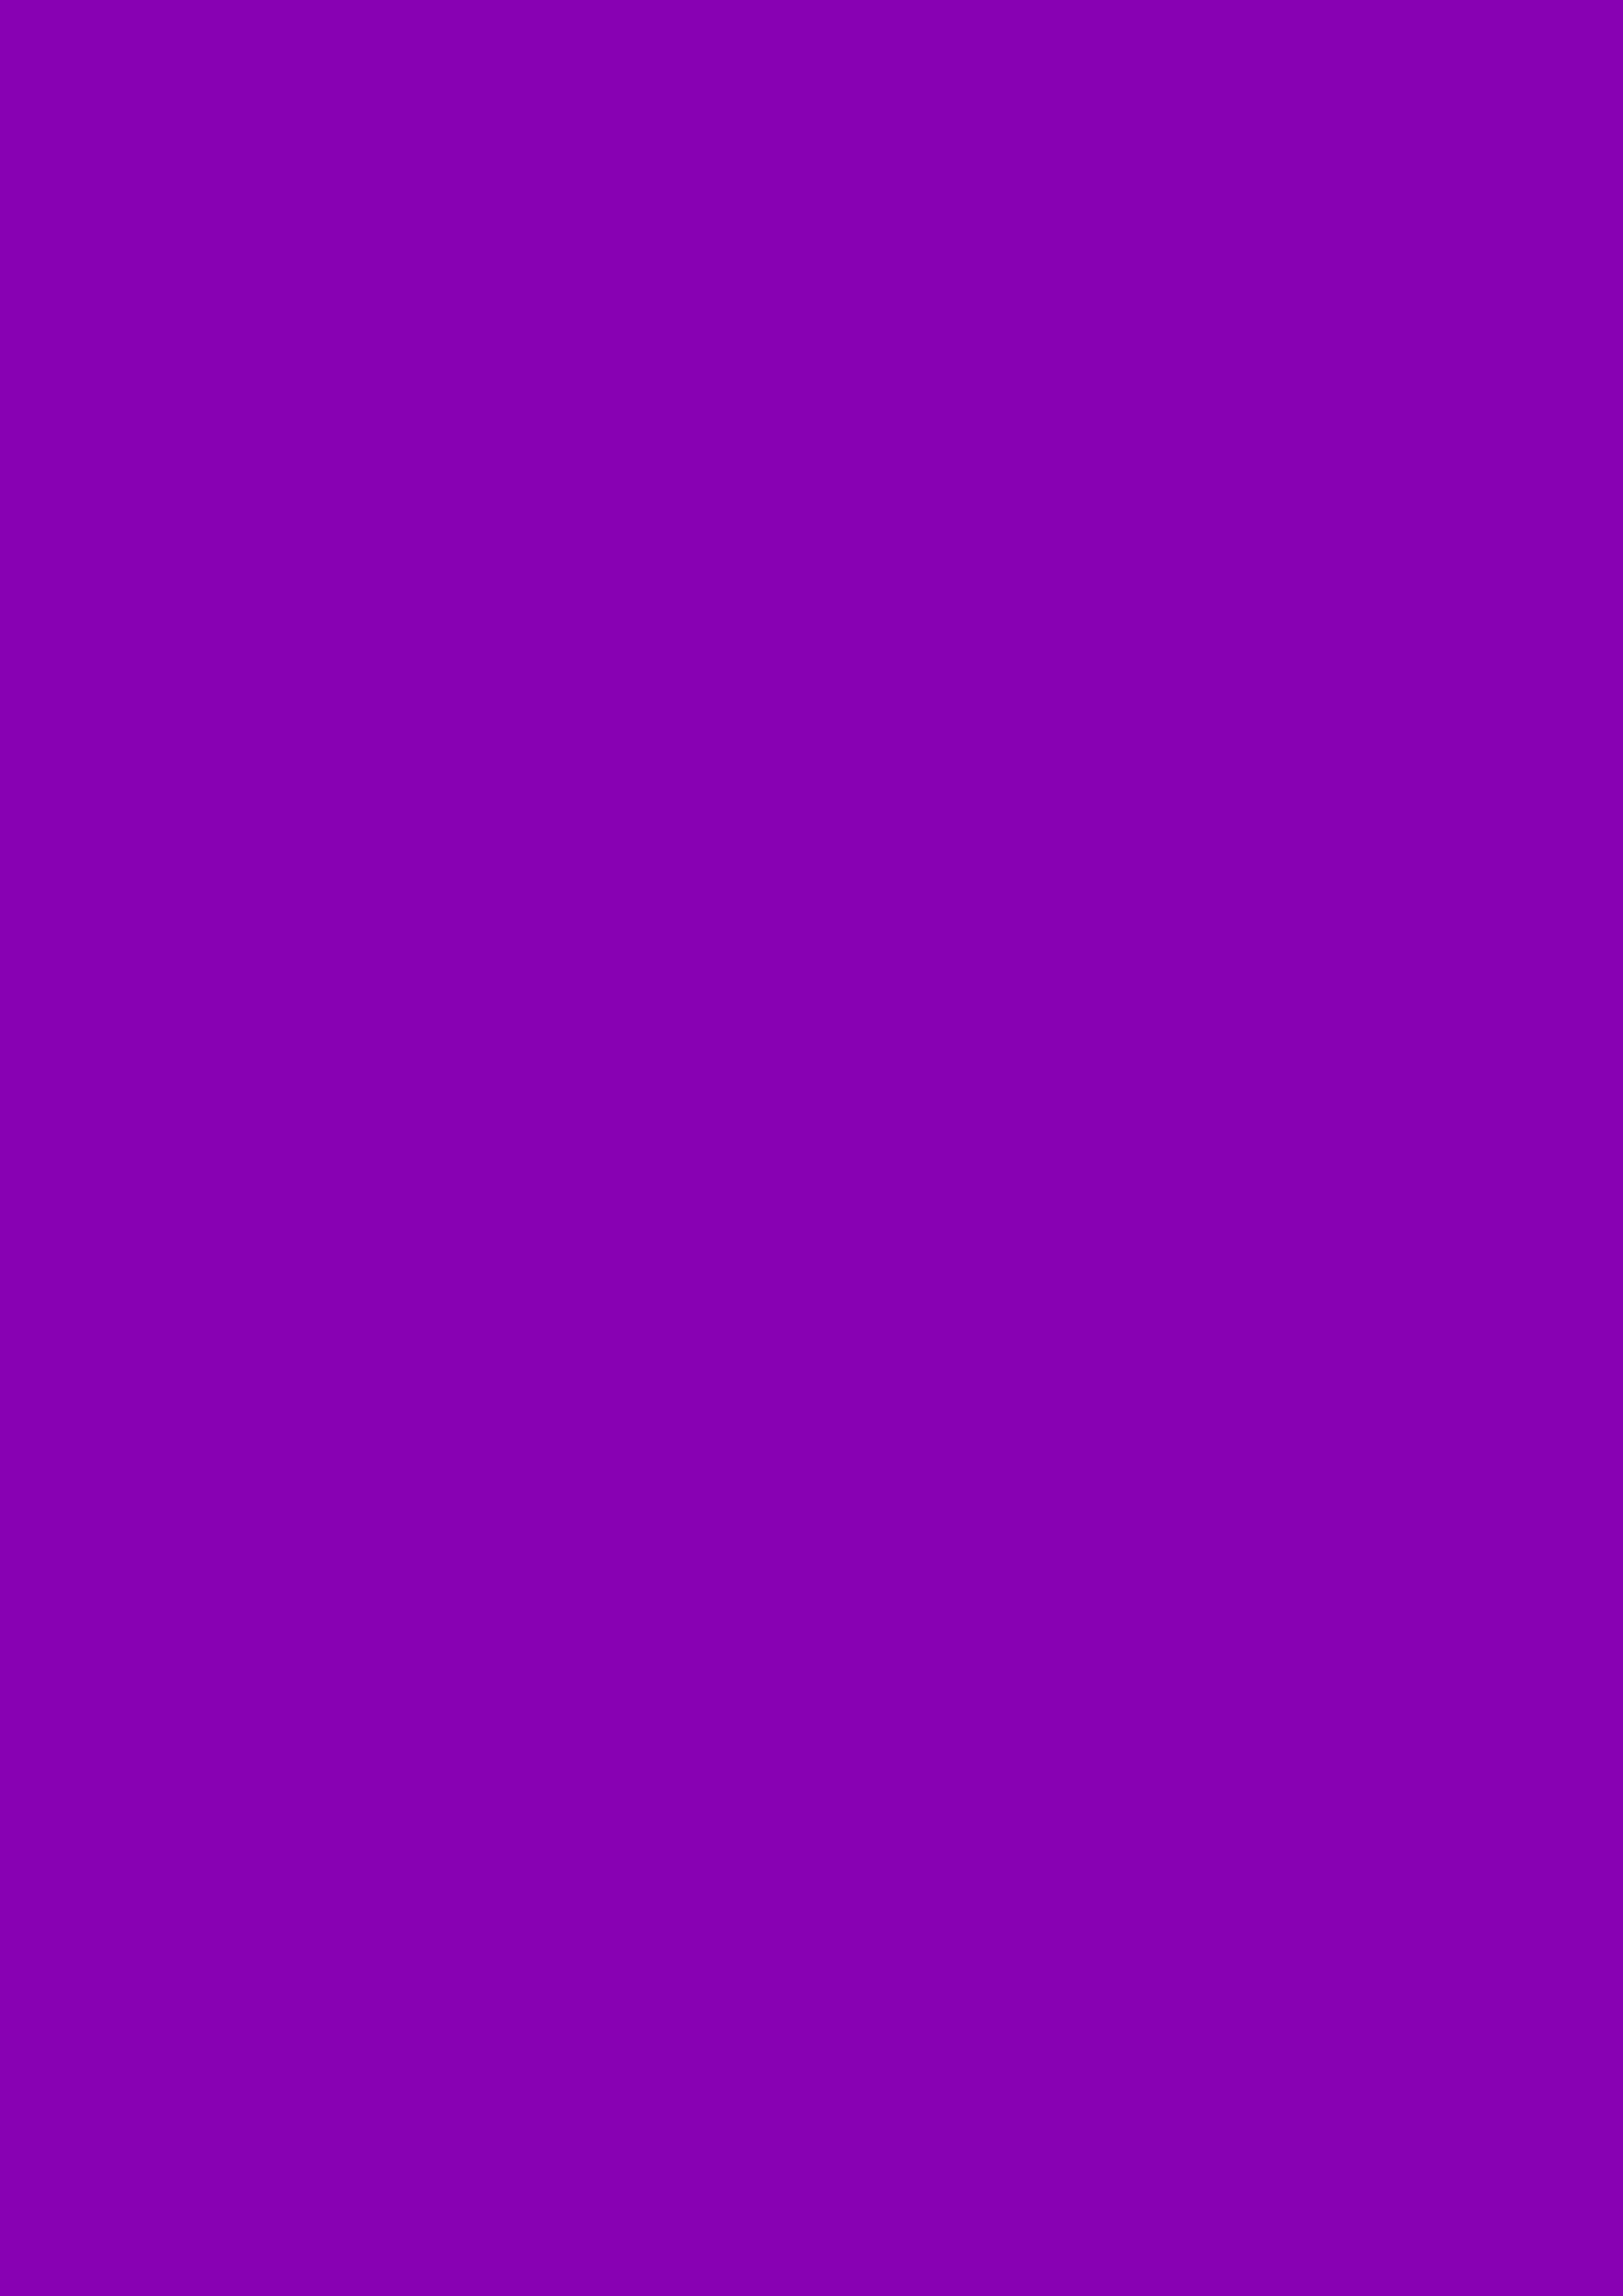 2480x3508 Violet RYB Solid Color Background